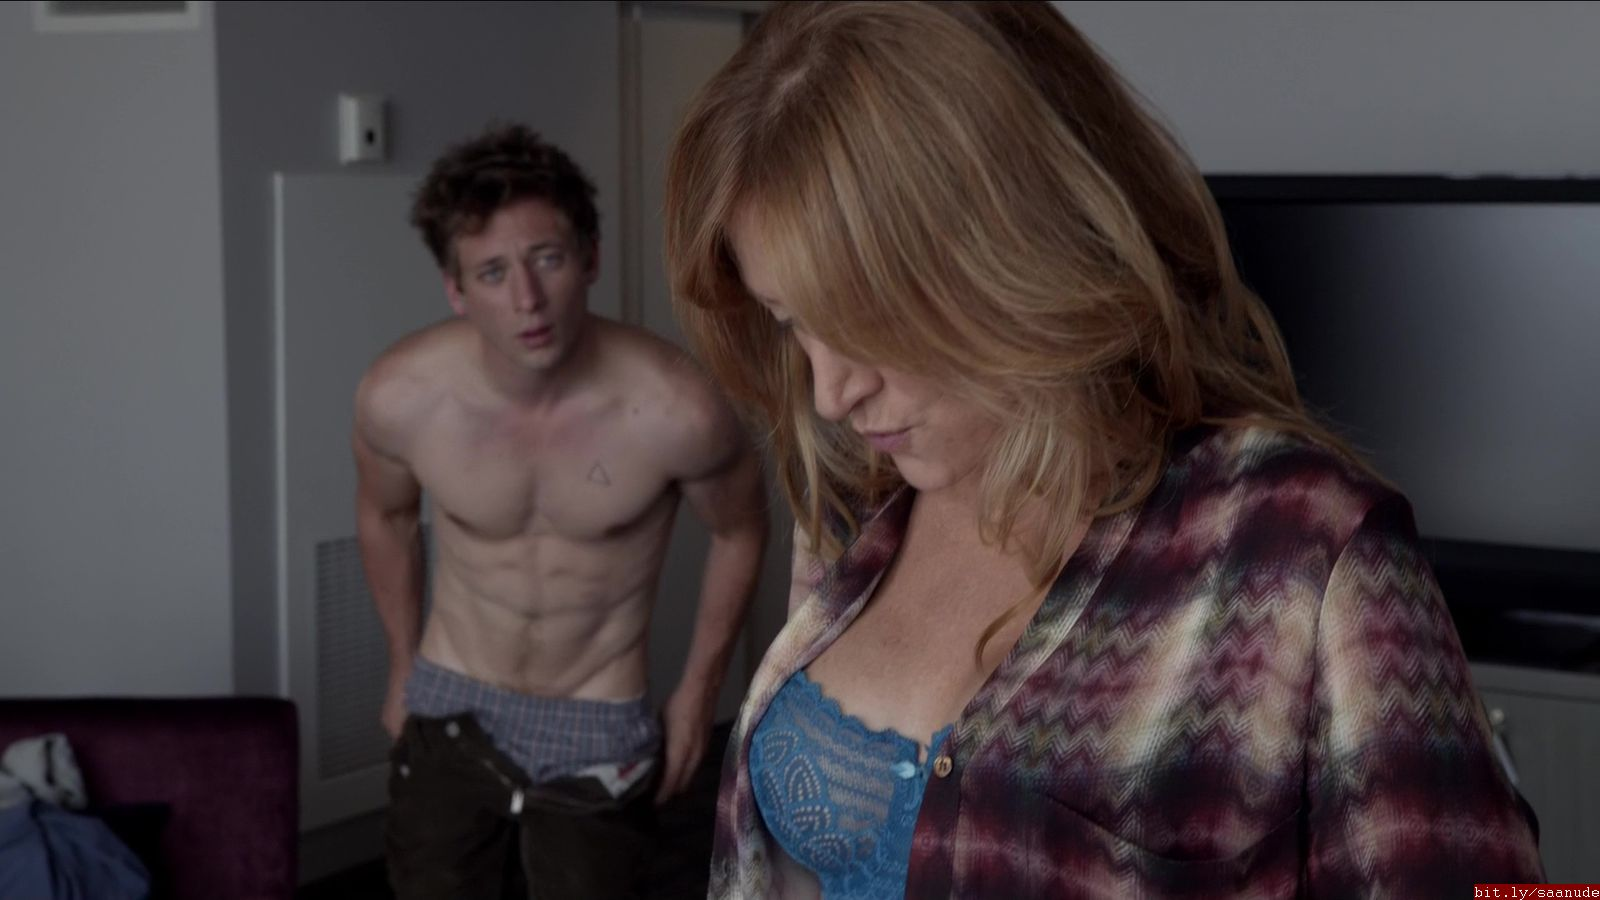 Is There Nudity In Shameless shameless sex abuse porn - excellent porn